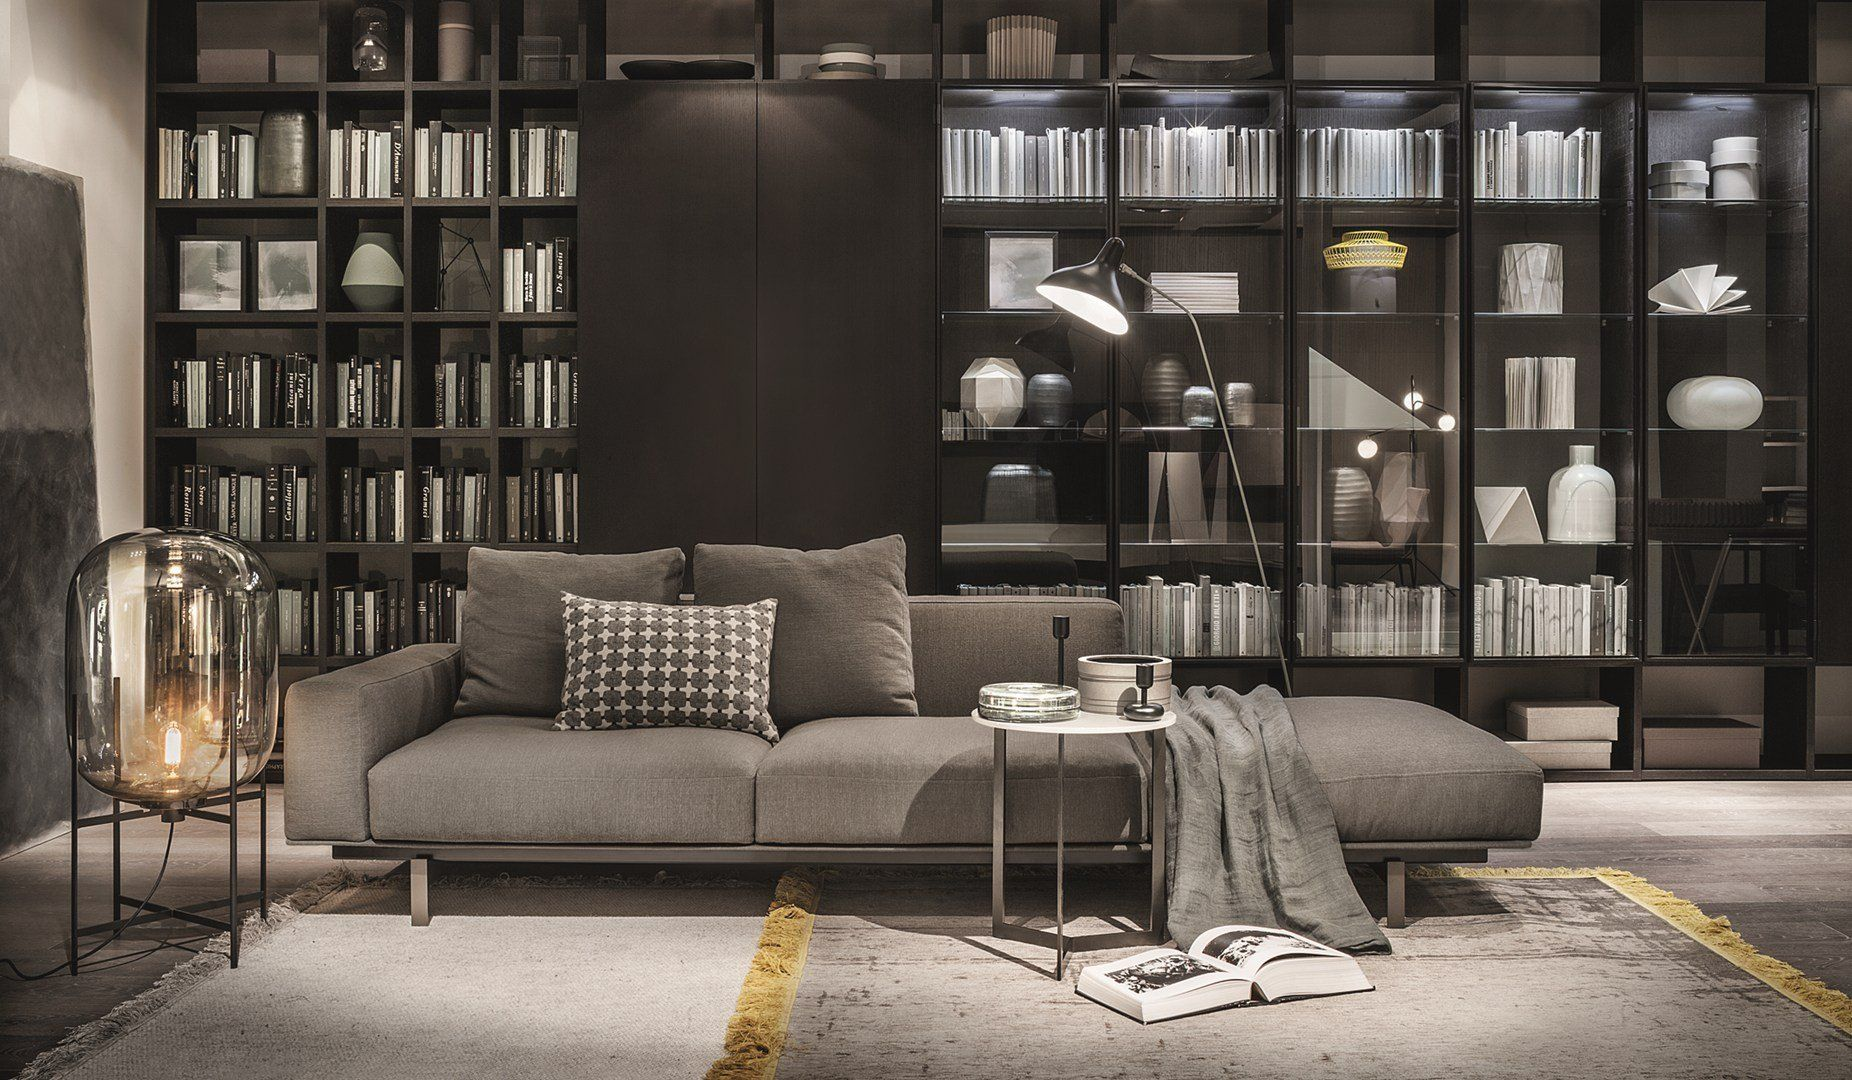 New lema sofa collections design by francesco rota and christophe pillet - Il mondo del sofa ...